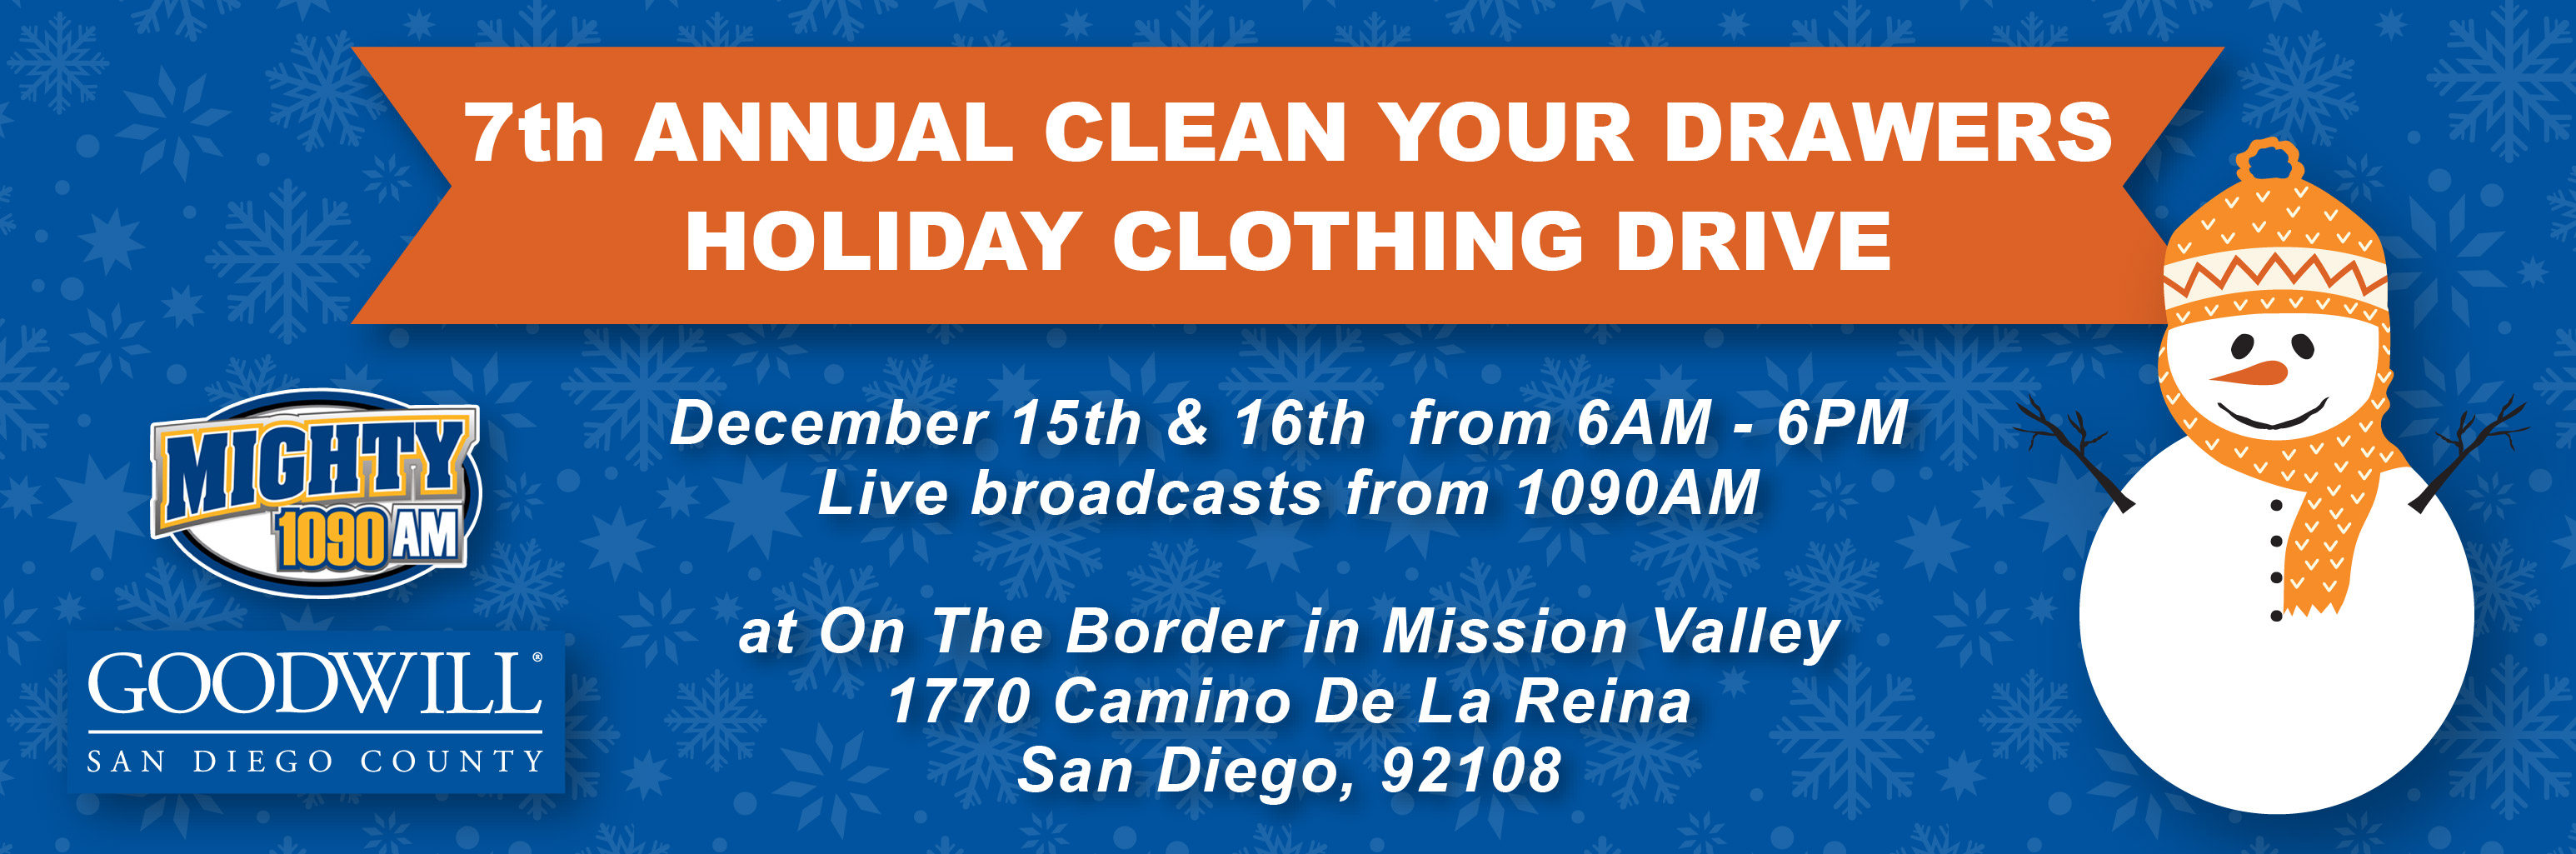 Clean Your Drawers Event Banner 2016-01